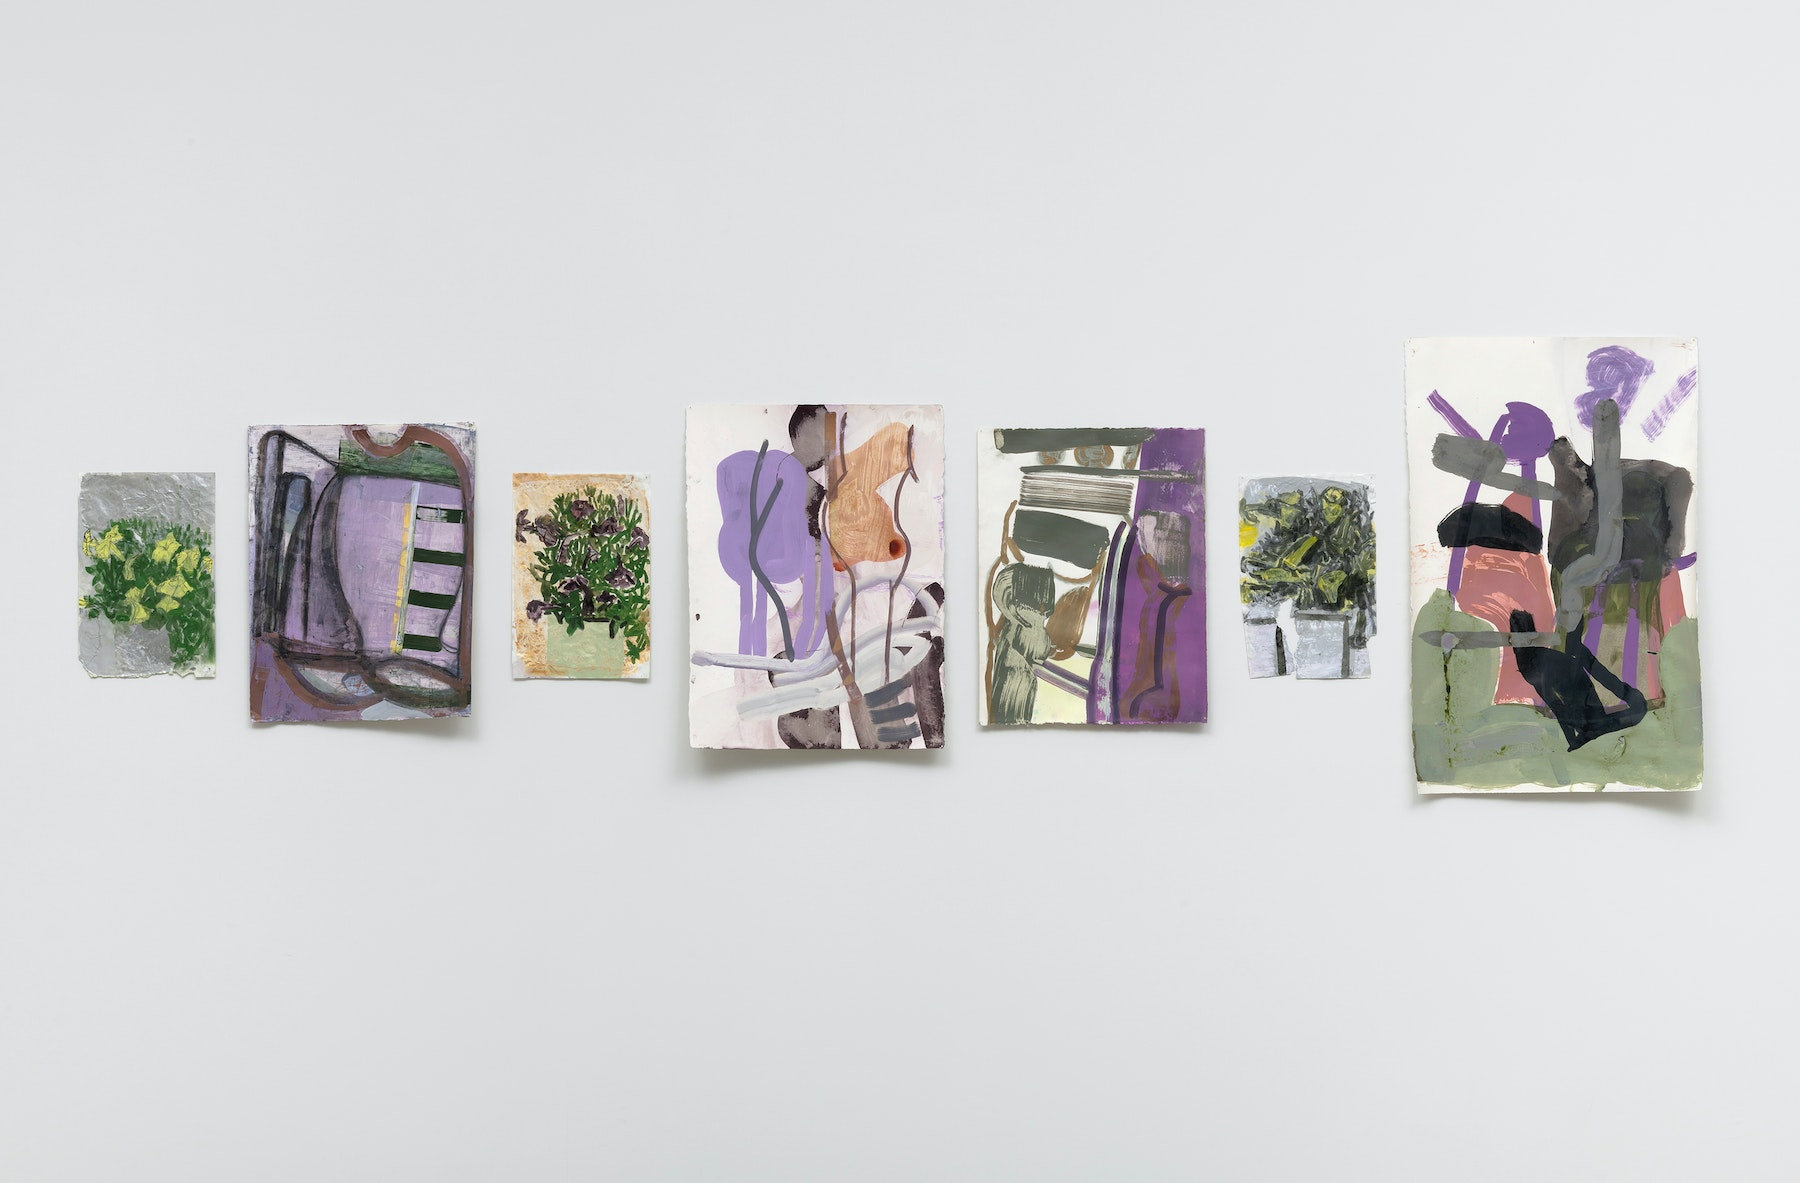 """Amy Sillman """"Petunias 1,"""" """"Untitled,"""" """"Petunias 2,"""" """"Untitled,"""" """"Untitled,"""" """"Untitled,"""" """"Petunias 3,"""" """"Untitled,"""" all 2020 All Acrylic on paper Various Dimensions Courtesy of the artist, Gladstone Gallery, and Vielmetter Los Angeles Photo credit: Robert Wedemeyer"""